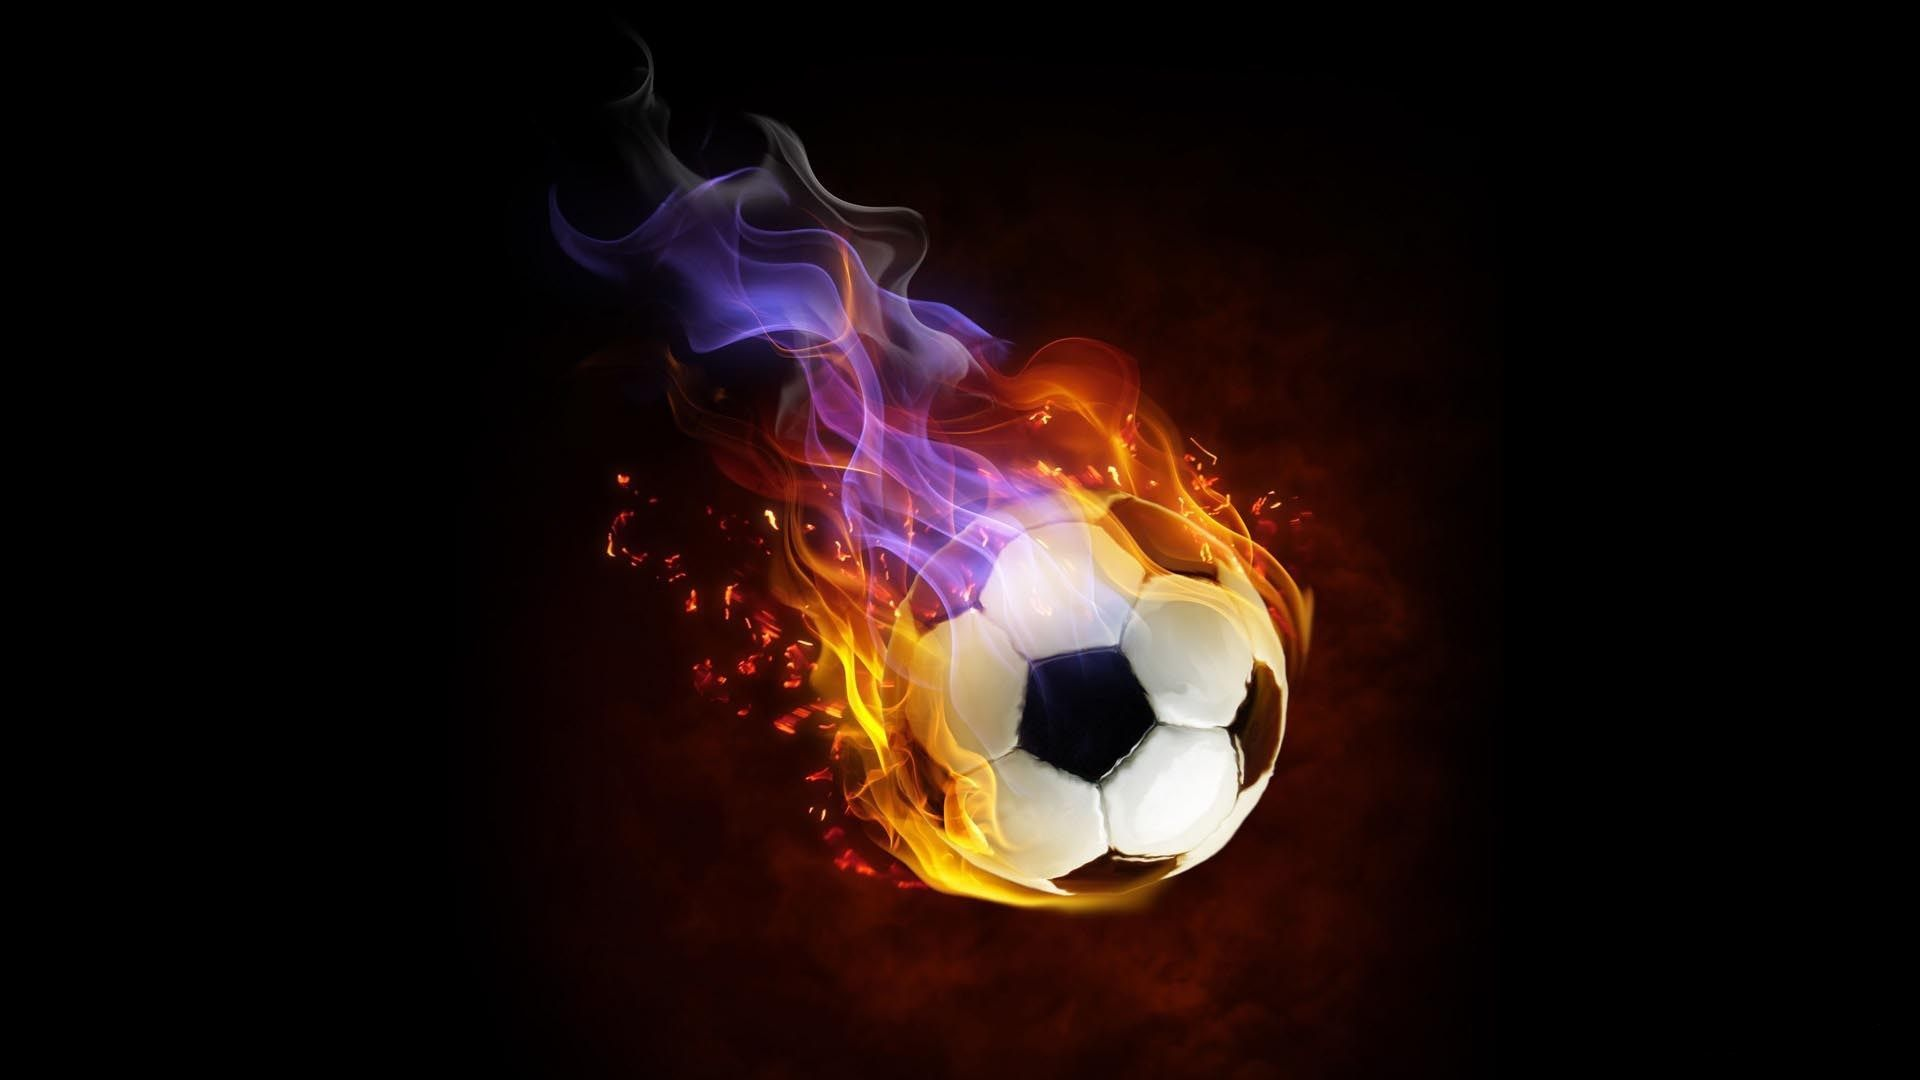 Soccer Laptop Wallpapers   Top Soccer Laptop Backgrounds 1920x1080